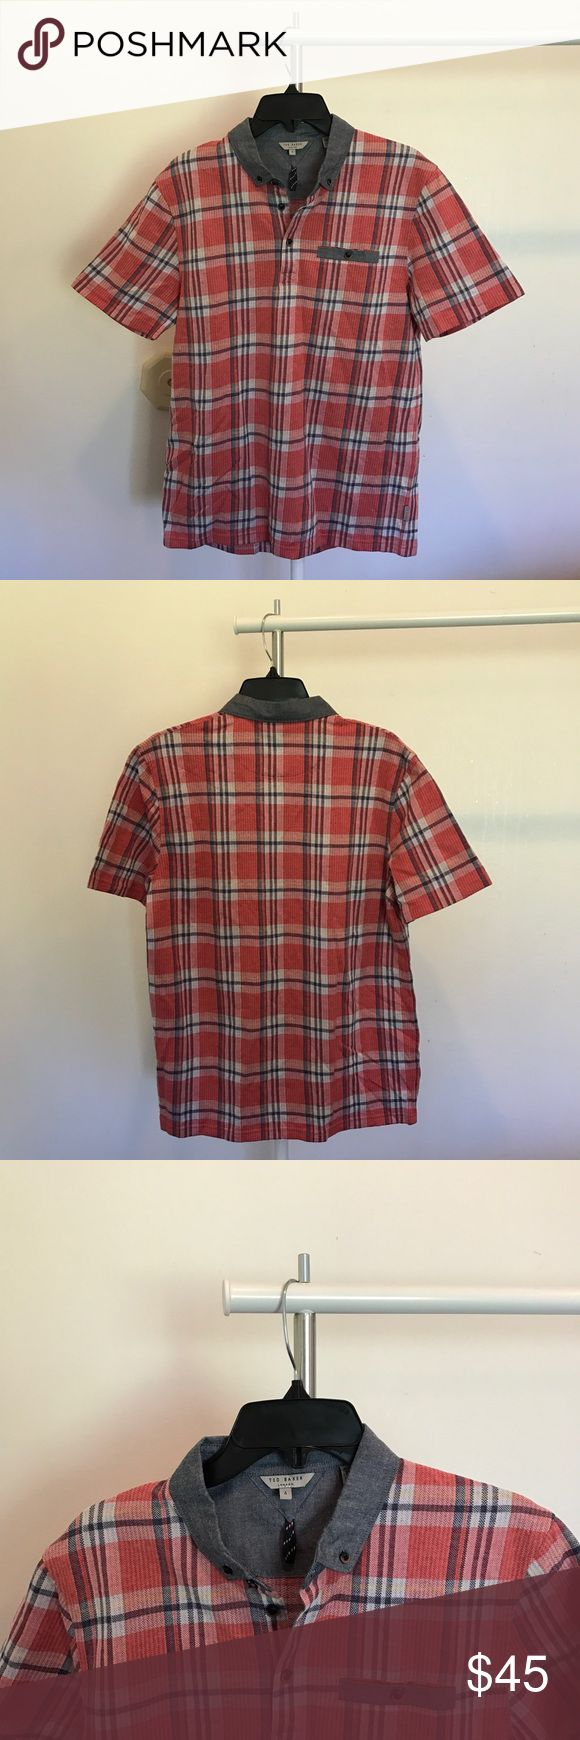 Ted Baker Short Sleeve Plaid Shirt New without tags. Size 4 = Large. Offers welcome Ted Baker Shirts Dress Shirts